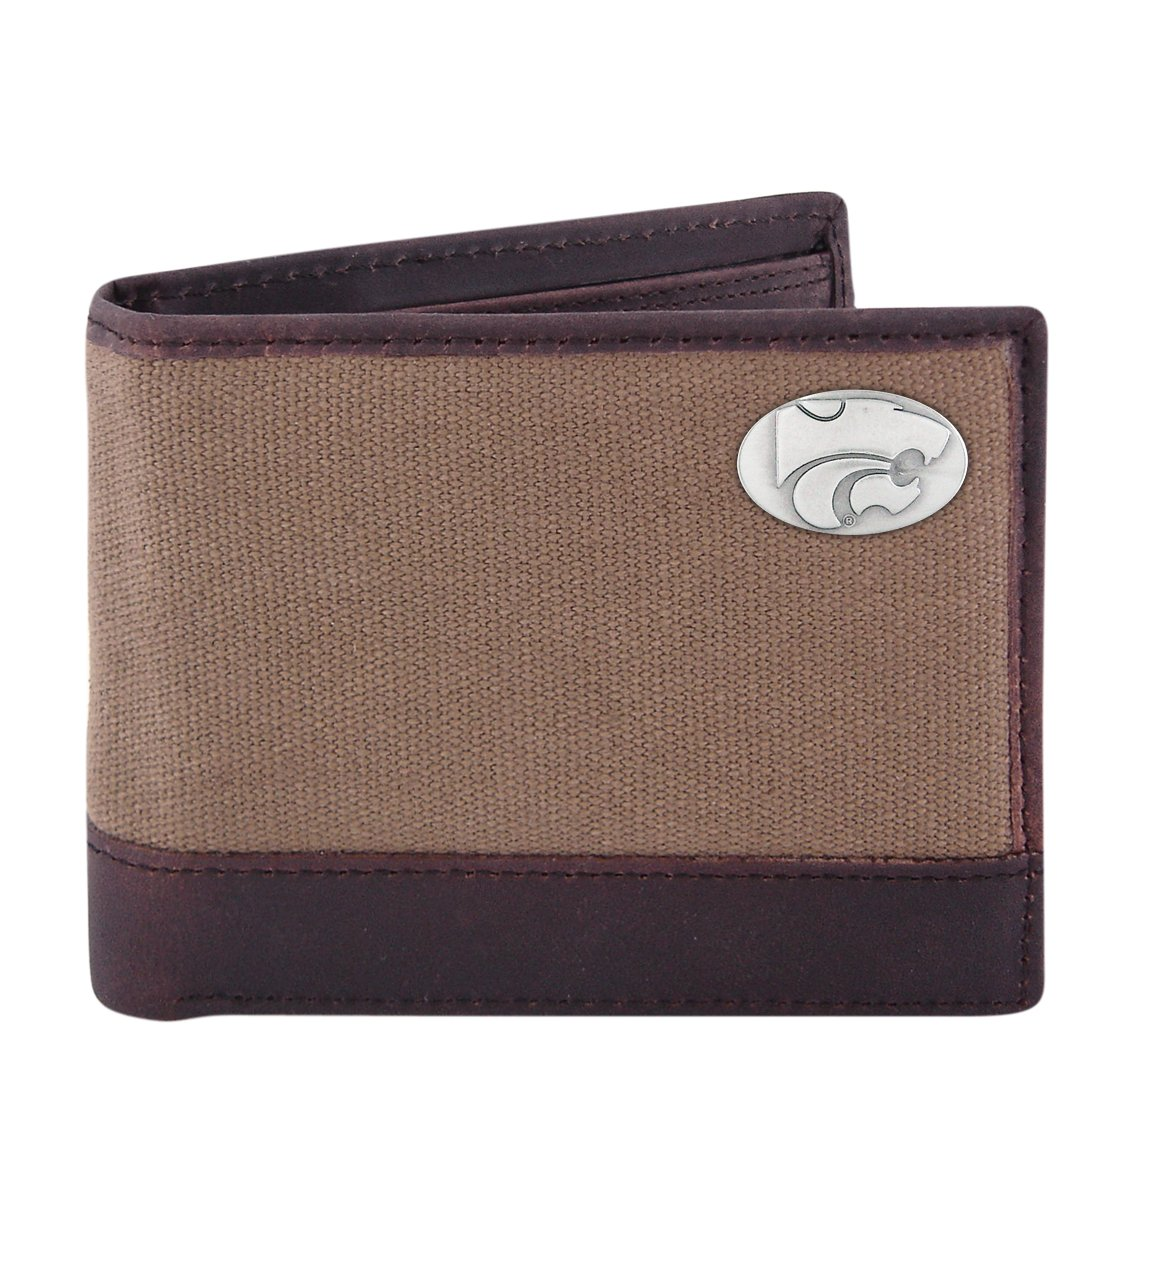 Olive ZEP-PRO NCAA Canvas Leather Concho Passcase Wallet